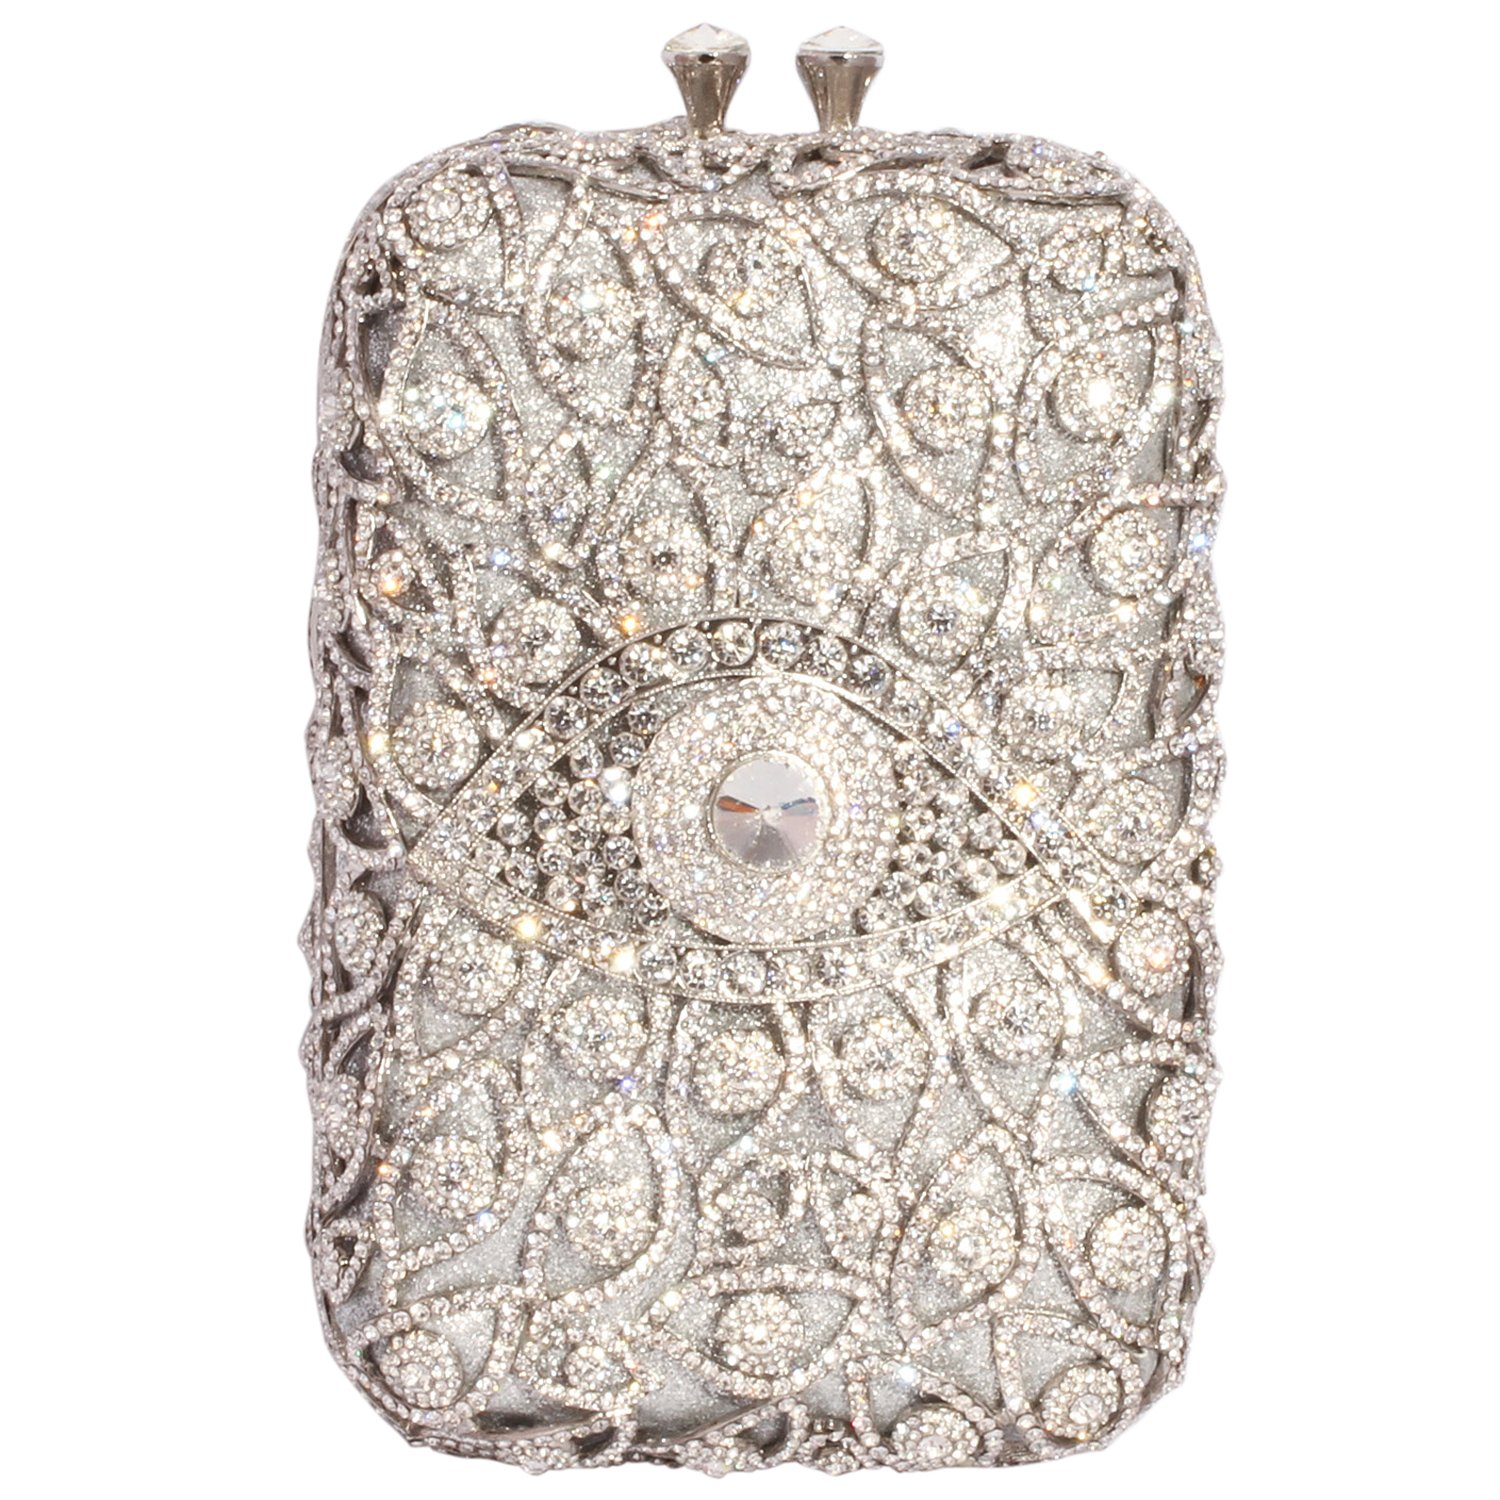 Digabi Eyes Rhinestone Purses Rectangle Shape Retro women Crystal Evening Clutch Bags (One Size : 4.72 IN (L) x 7.87 IN (H) x 2.6 IN (W), Whitet Crystal - Silver Plated)